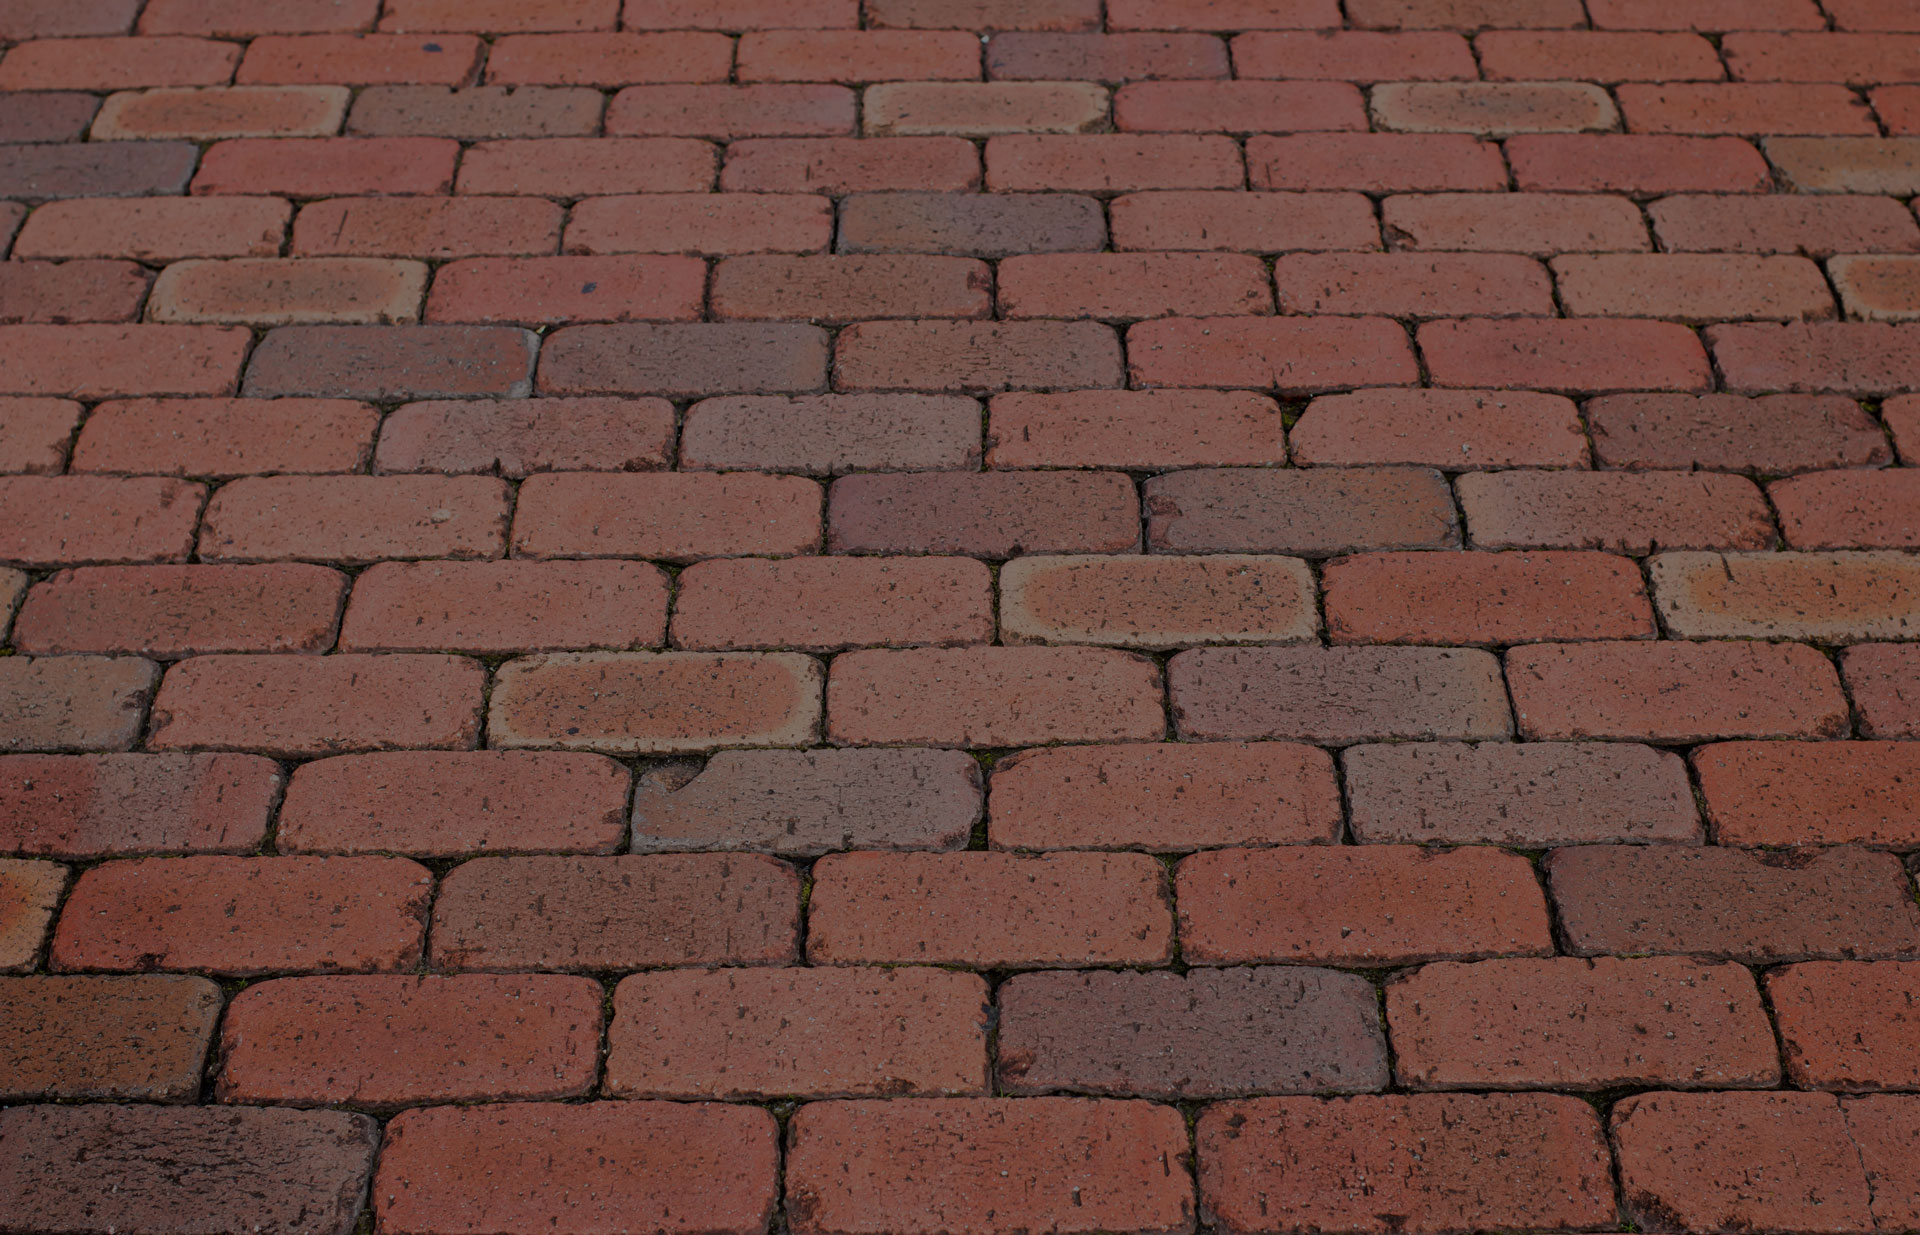 Brick footpath background. - Image